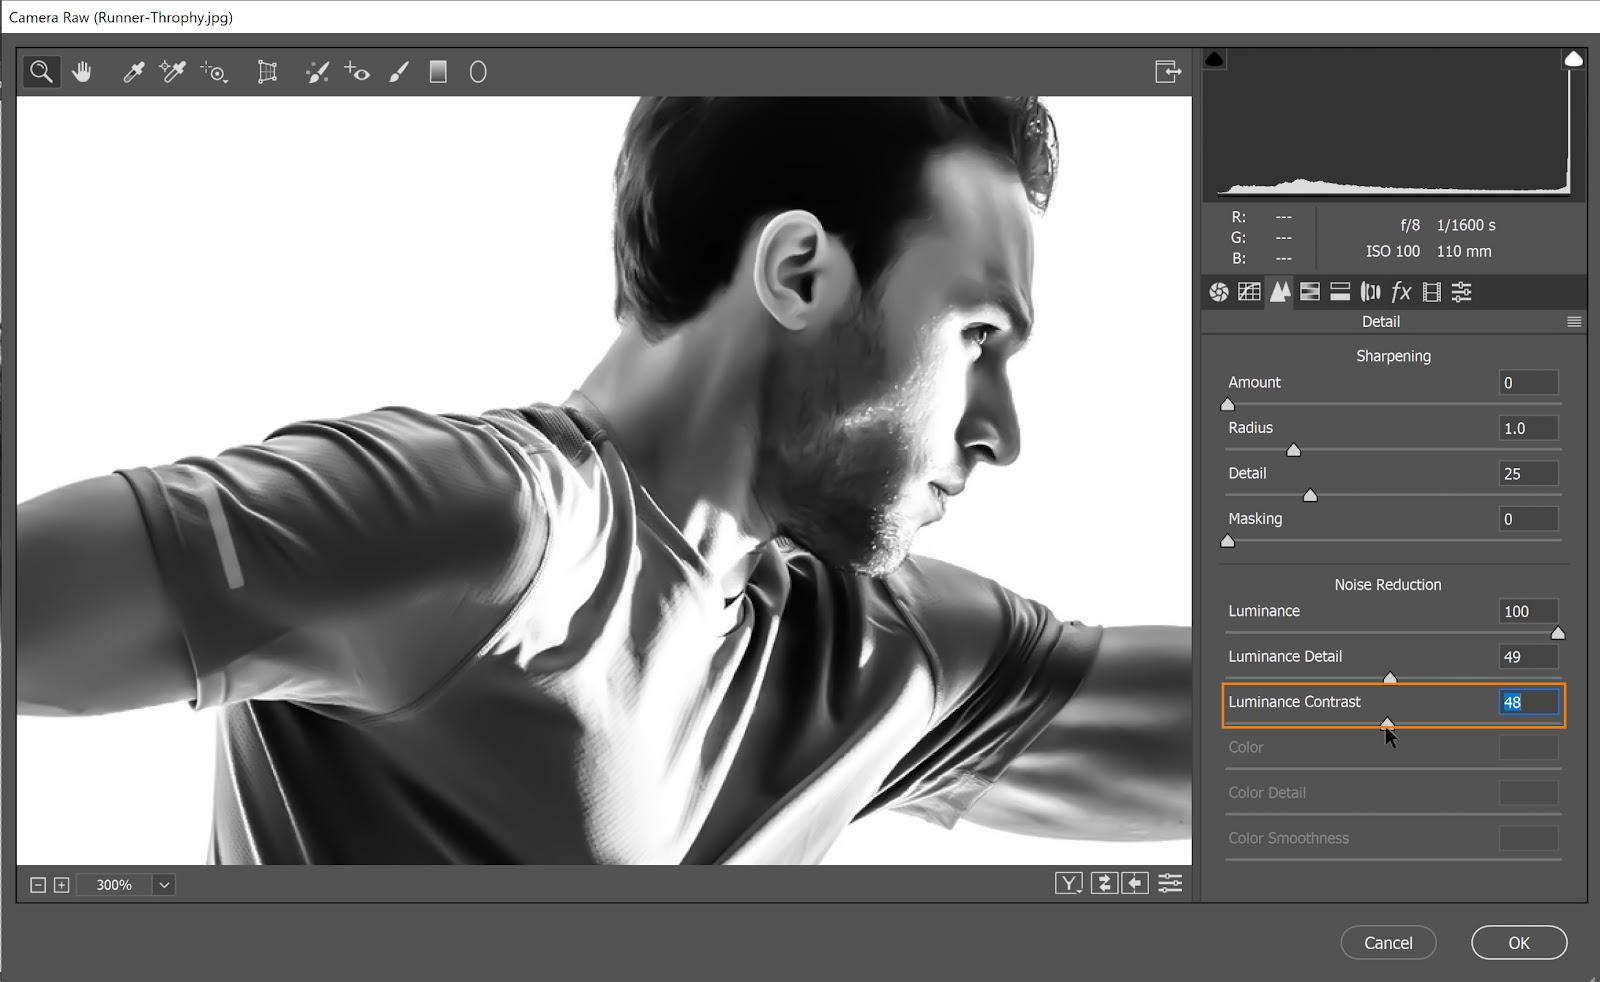 Reduce the Luminance Contrast to the minimum to produce smoother results